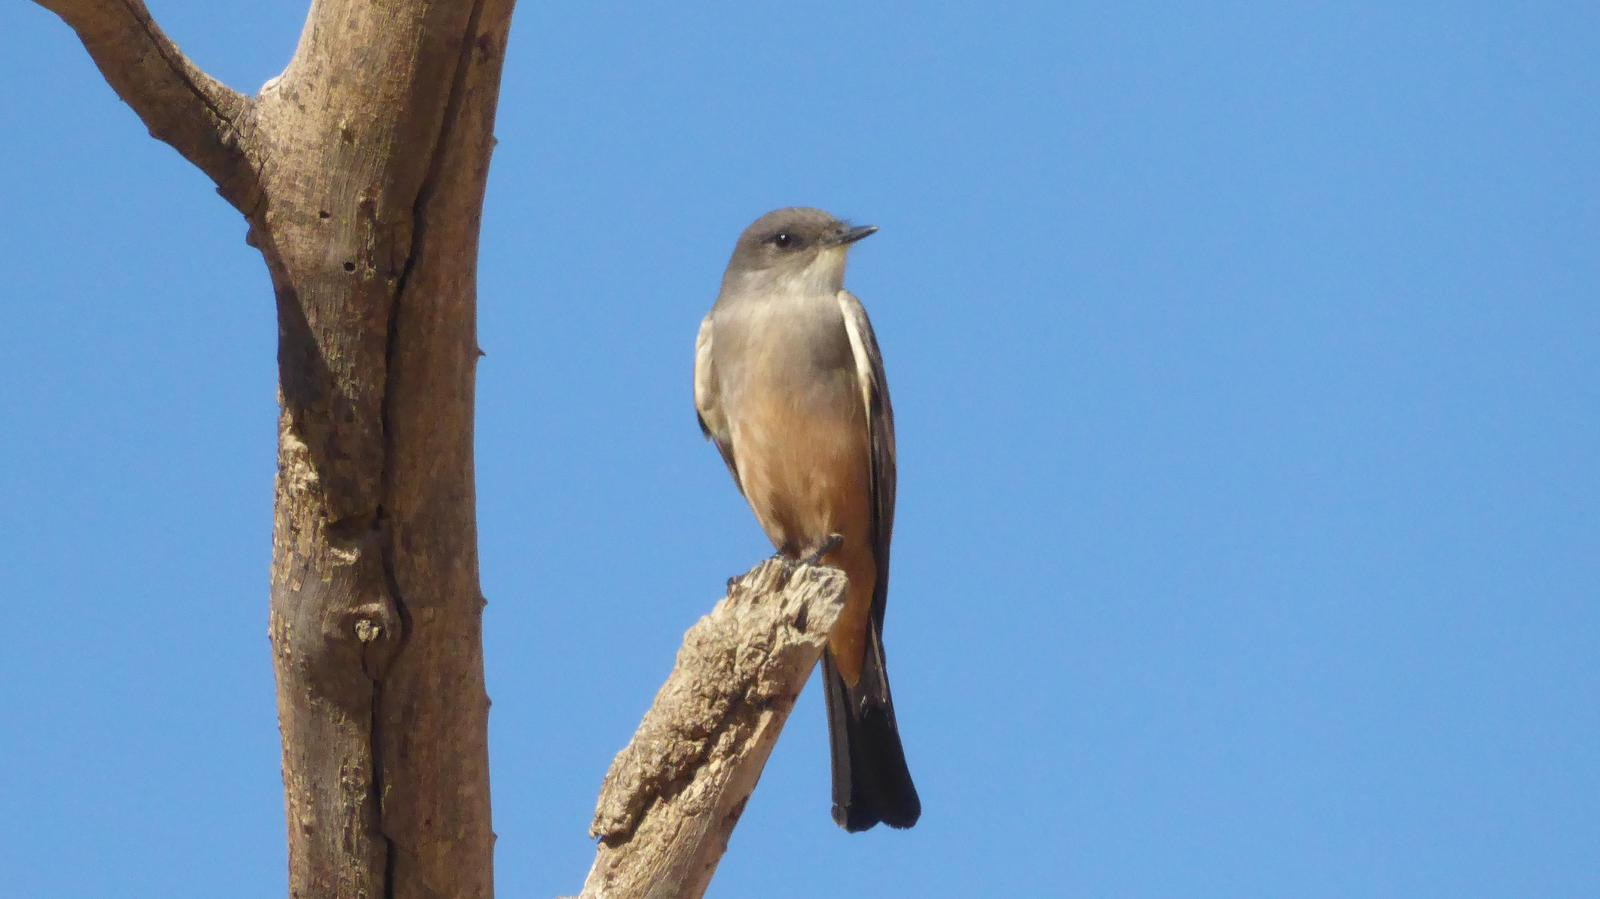 Say's Phoebe Photo by Daliel Leite